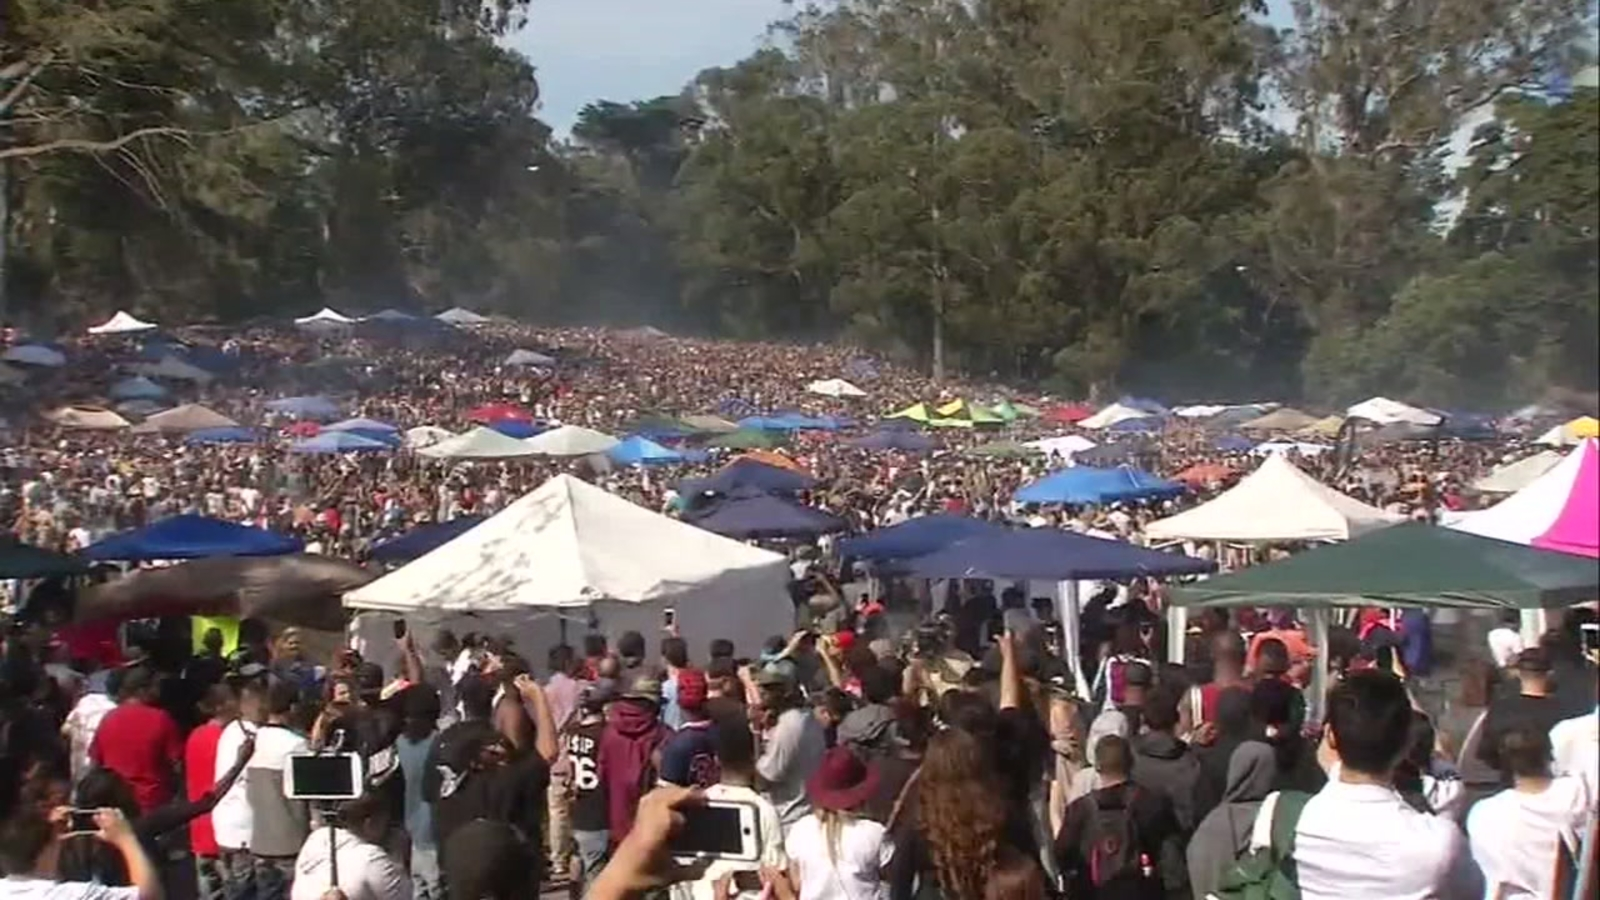 Organizers expect 20,000 at 4/20 smoke out at San Francisco's Hippie Hill